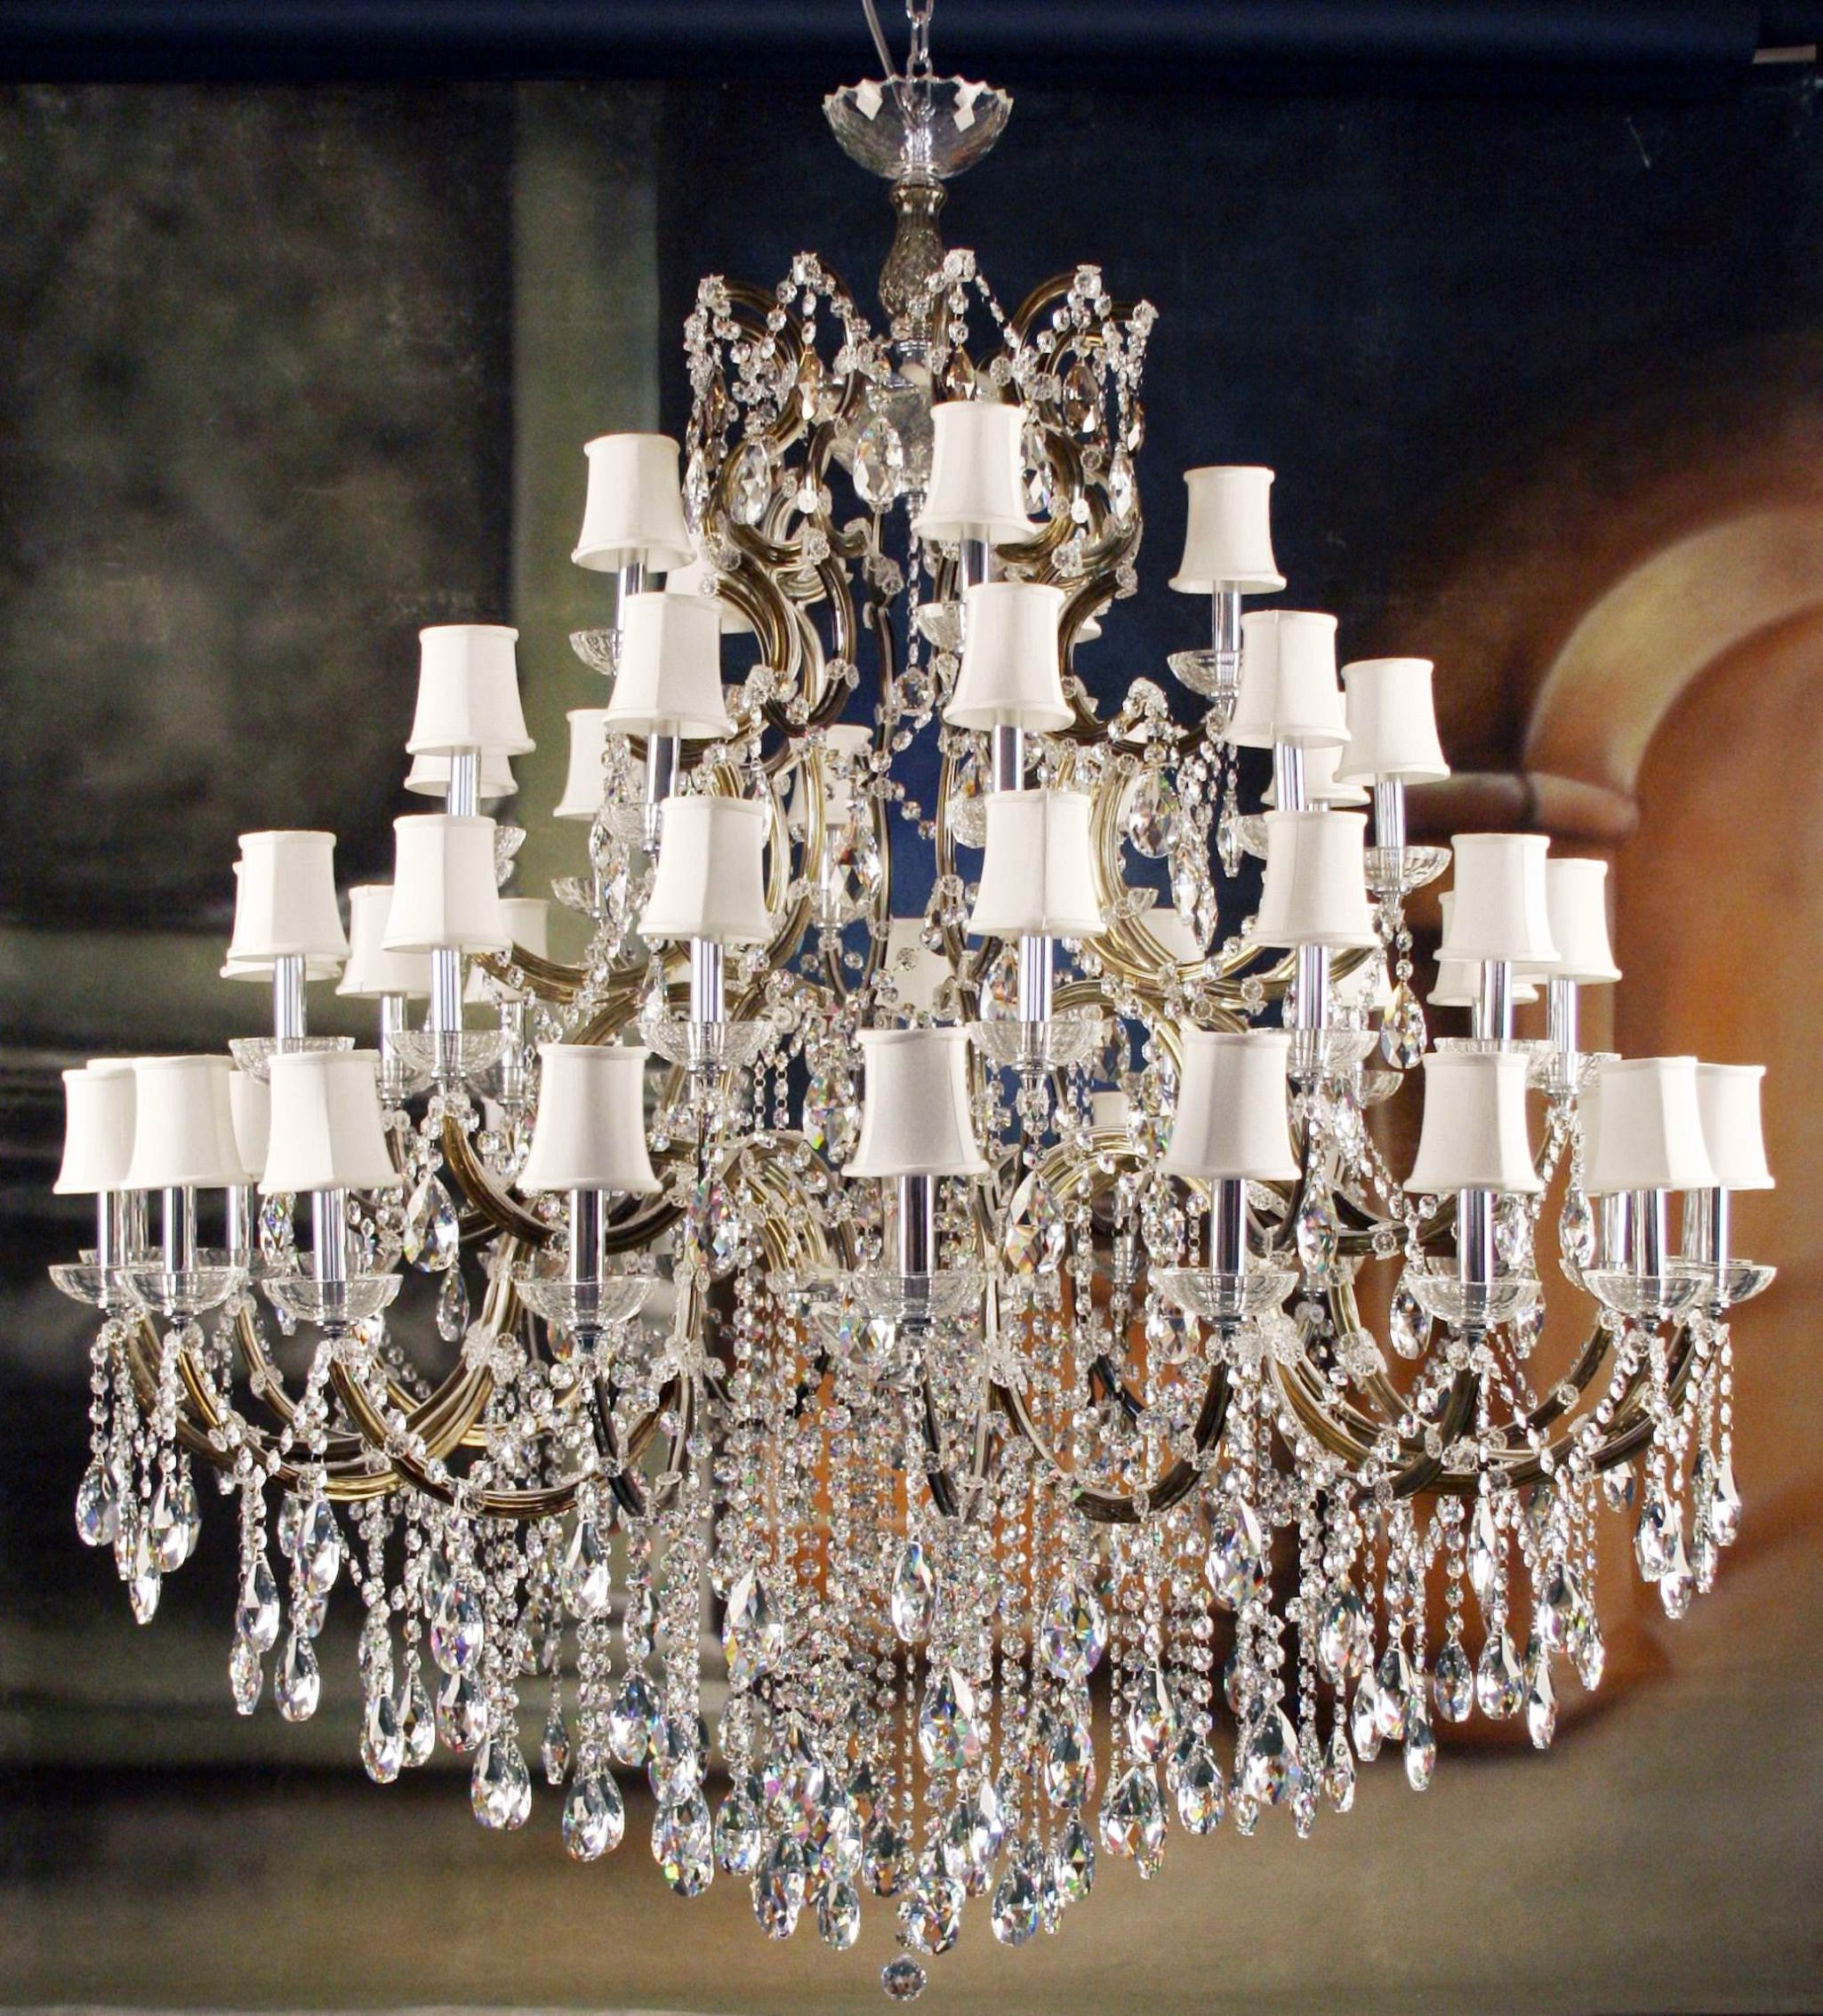 Living Room High Quality Crystal Chandeliers For Home Lighting Intended For Lampshades For Chandeliers (View 23 of 25)